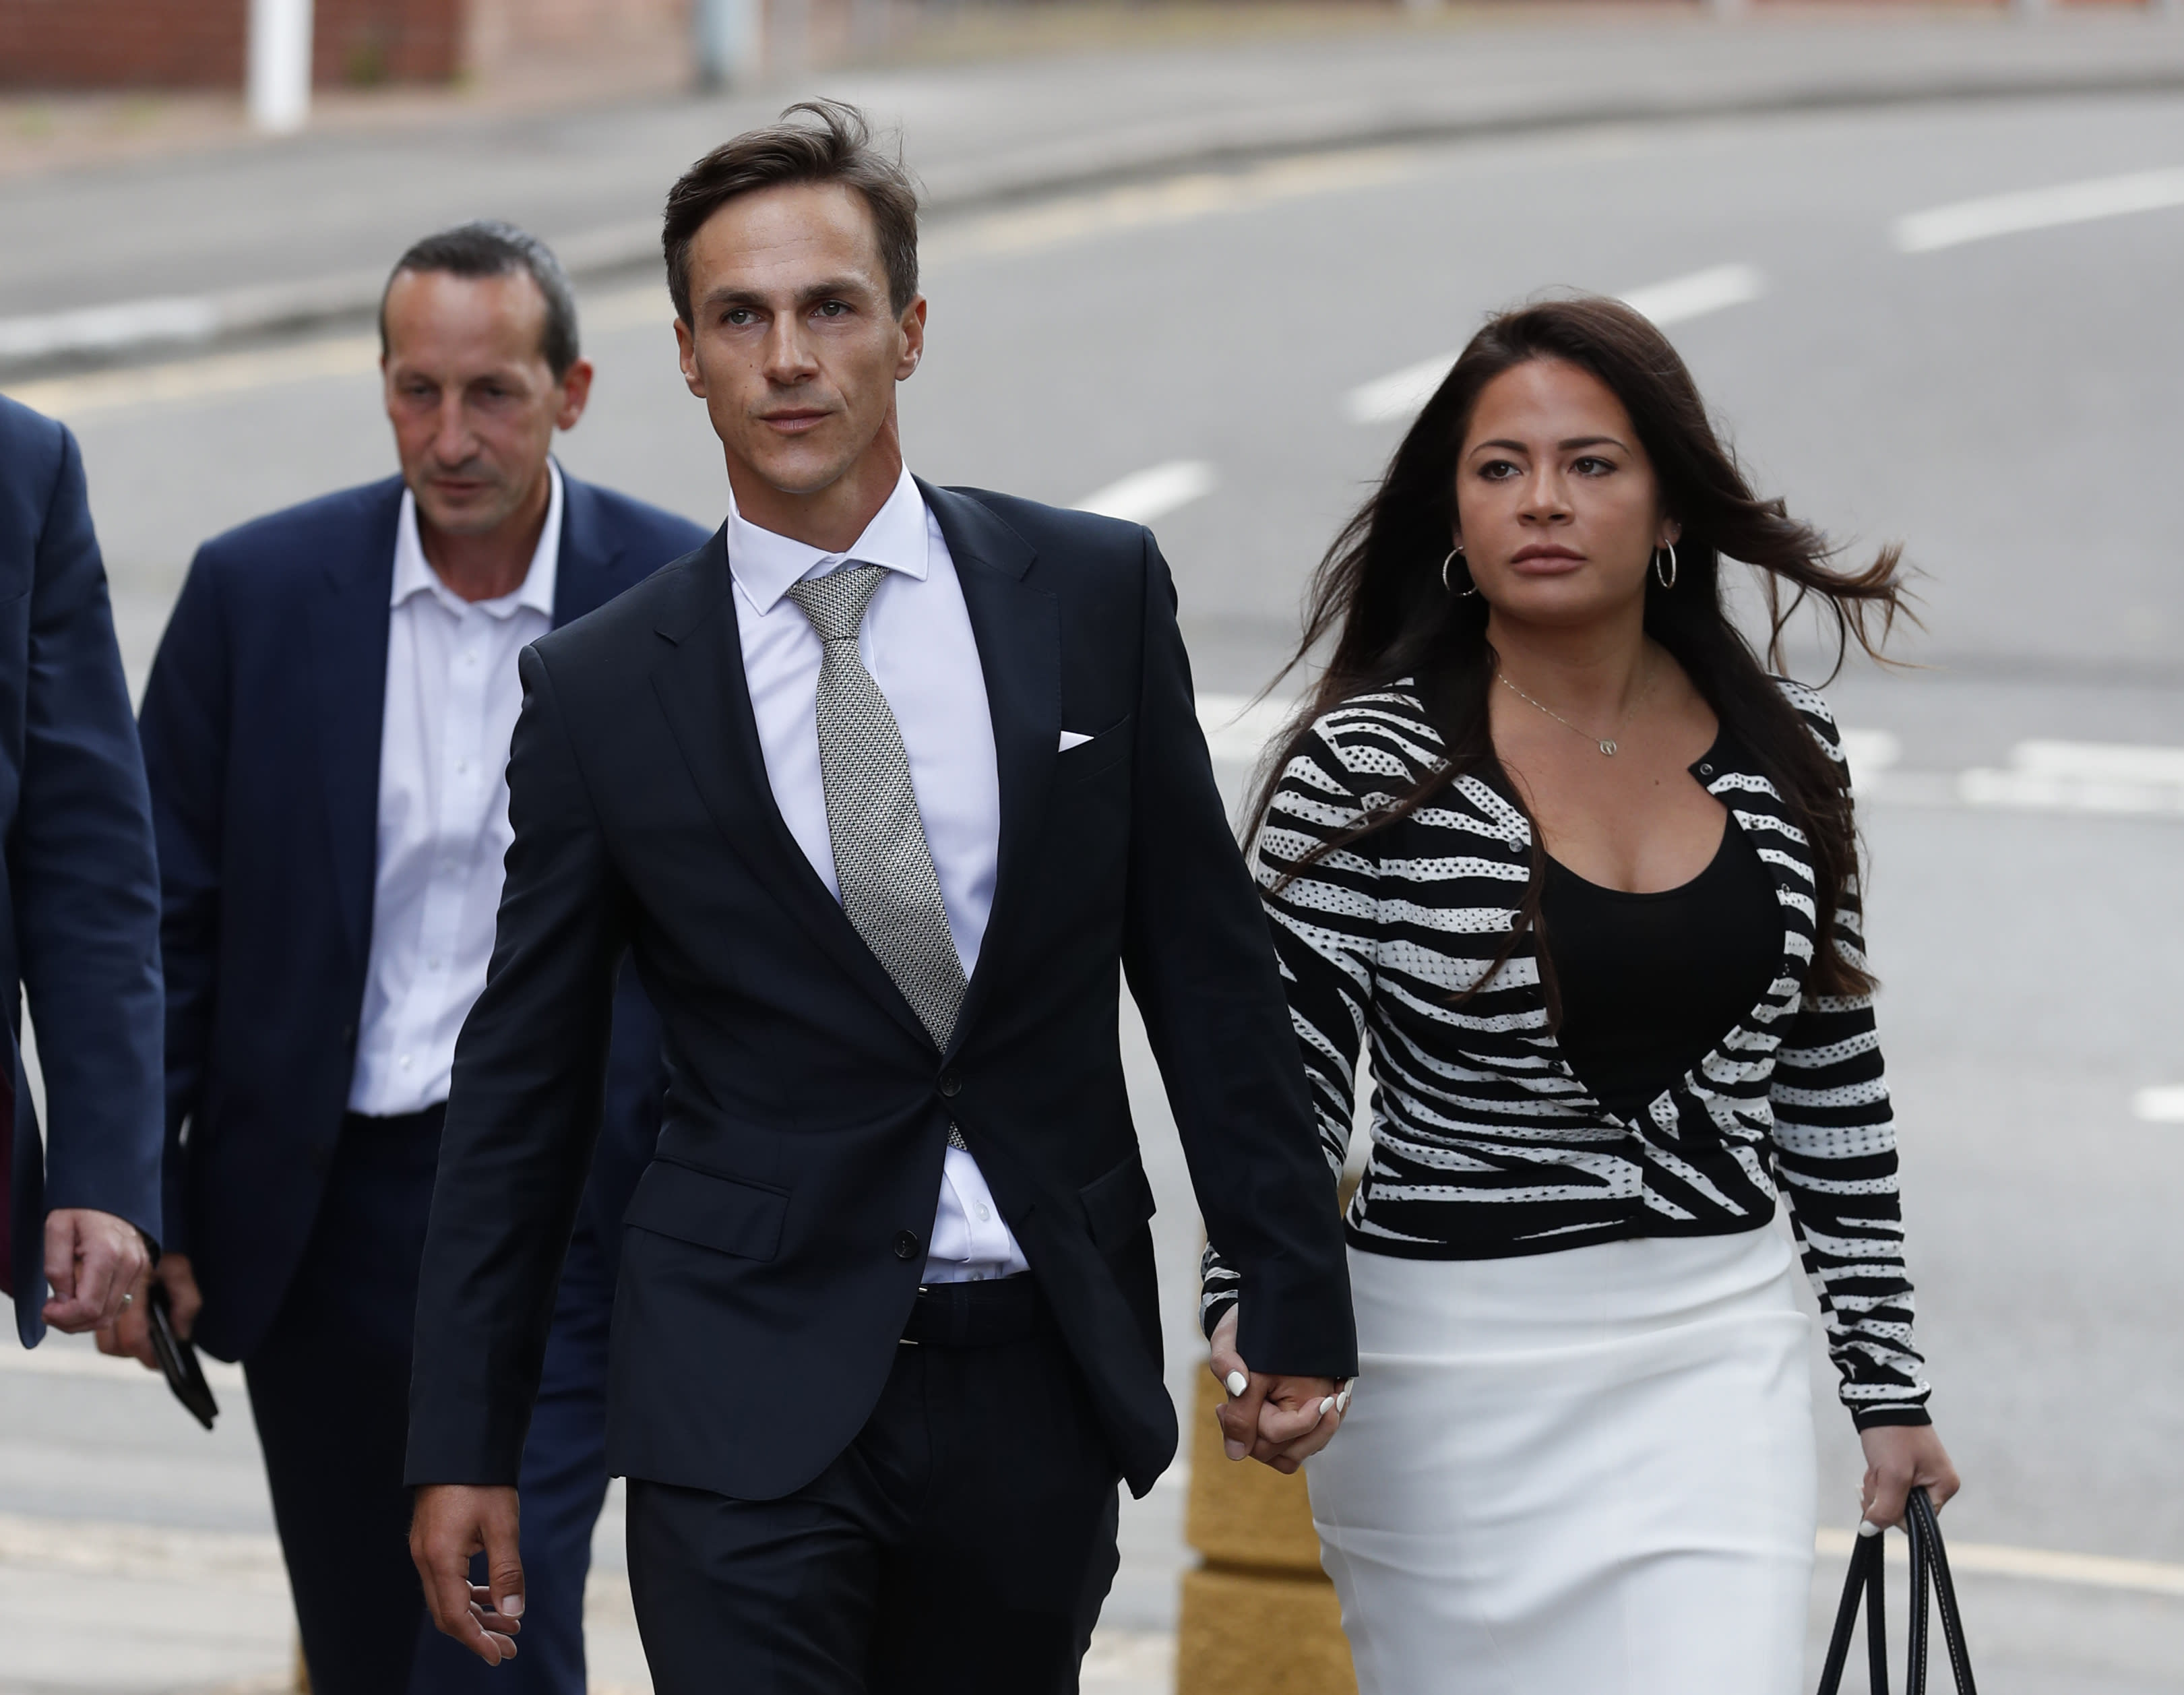 Olesen to face trial on sexual assault charges